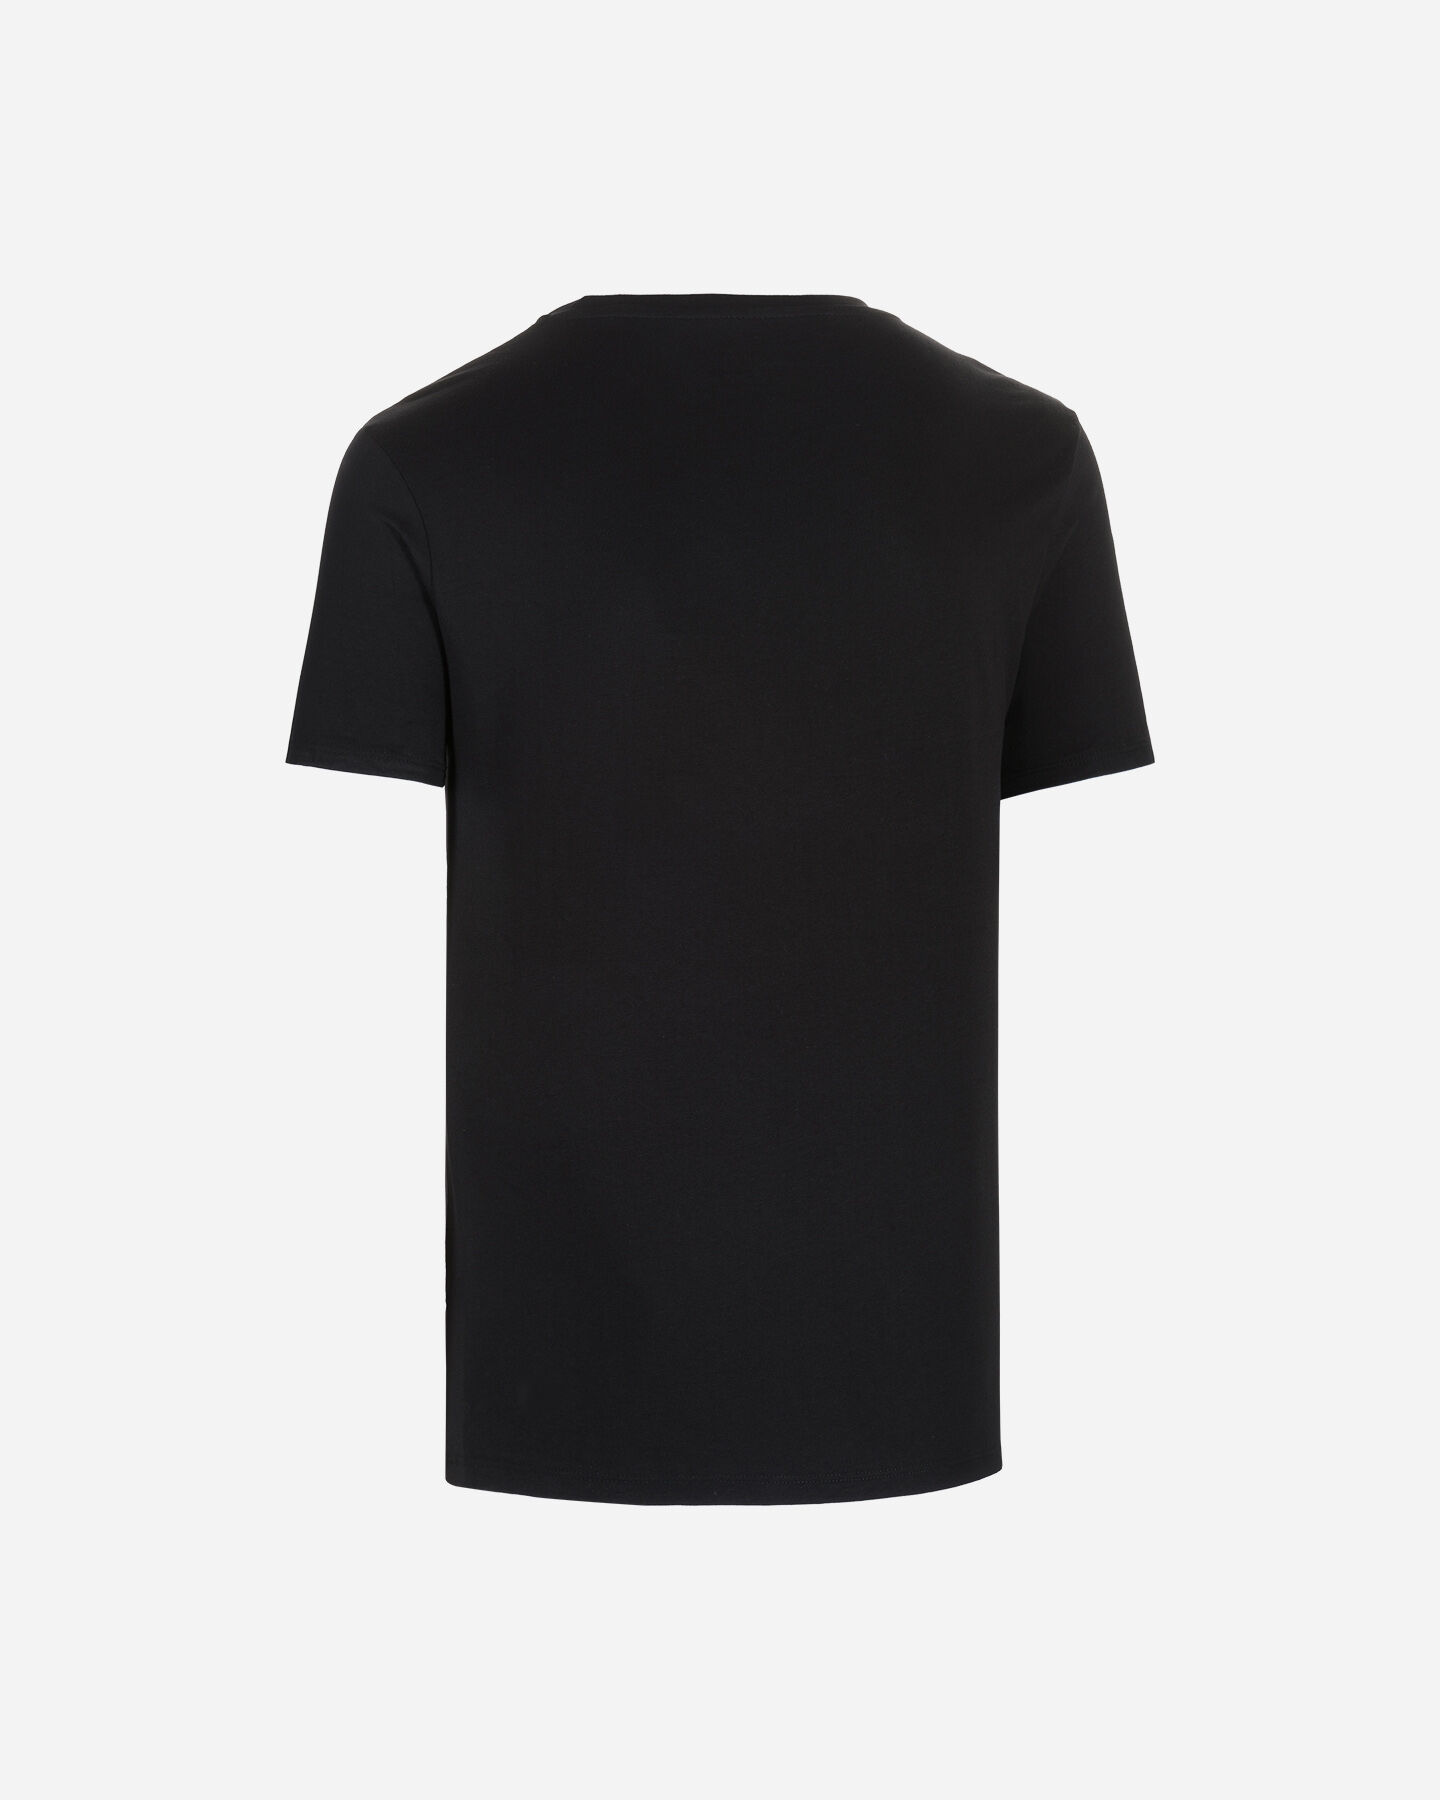 T-Shirt MISTRAL LOGO M S4067428 scatto 1